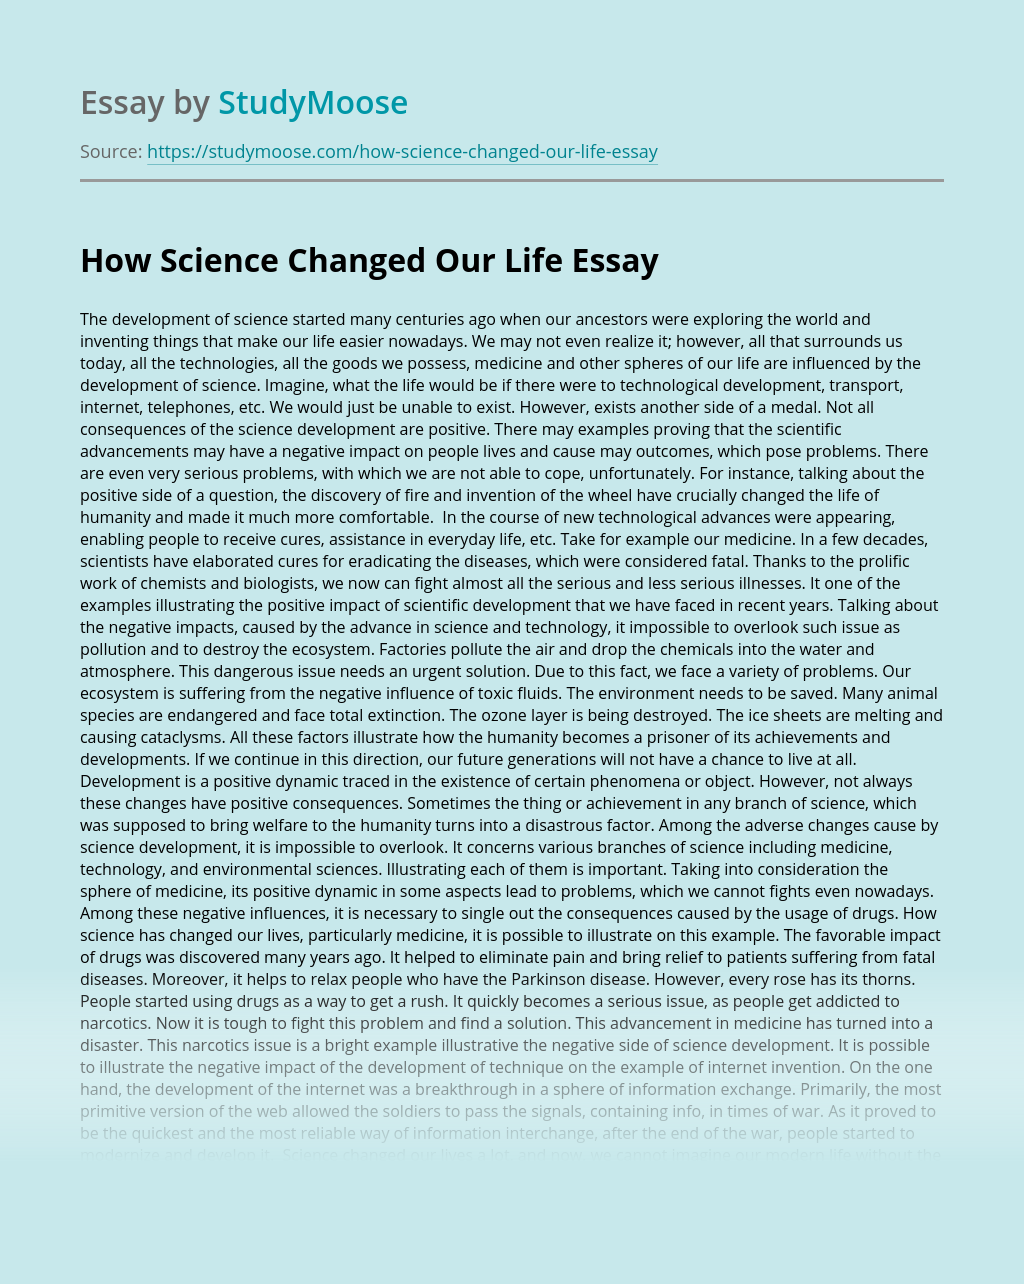 How Science Changed Our Life